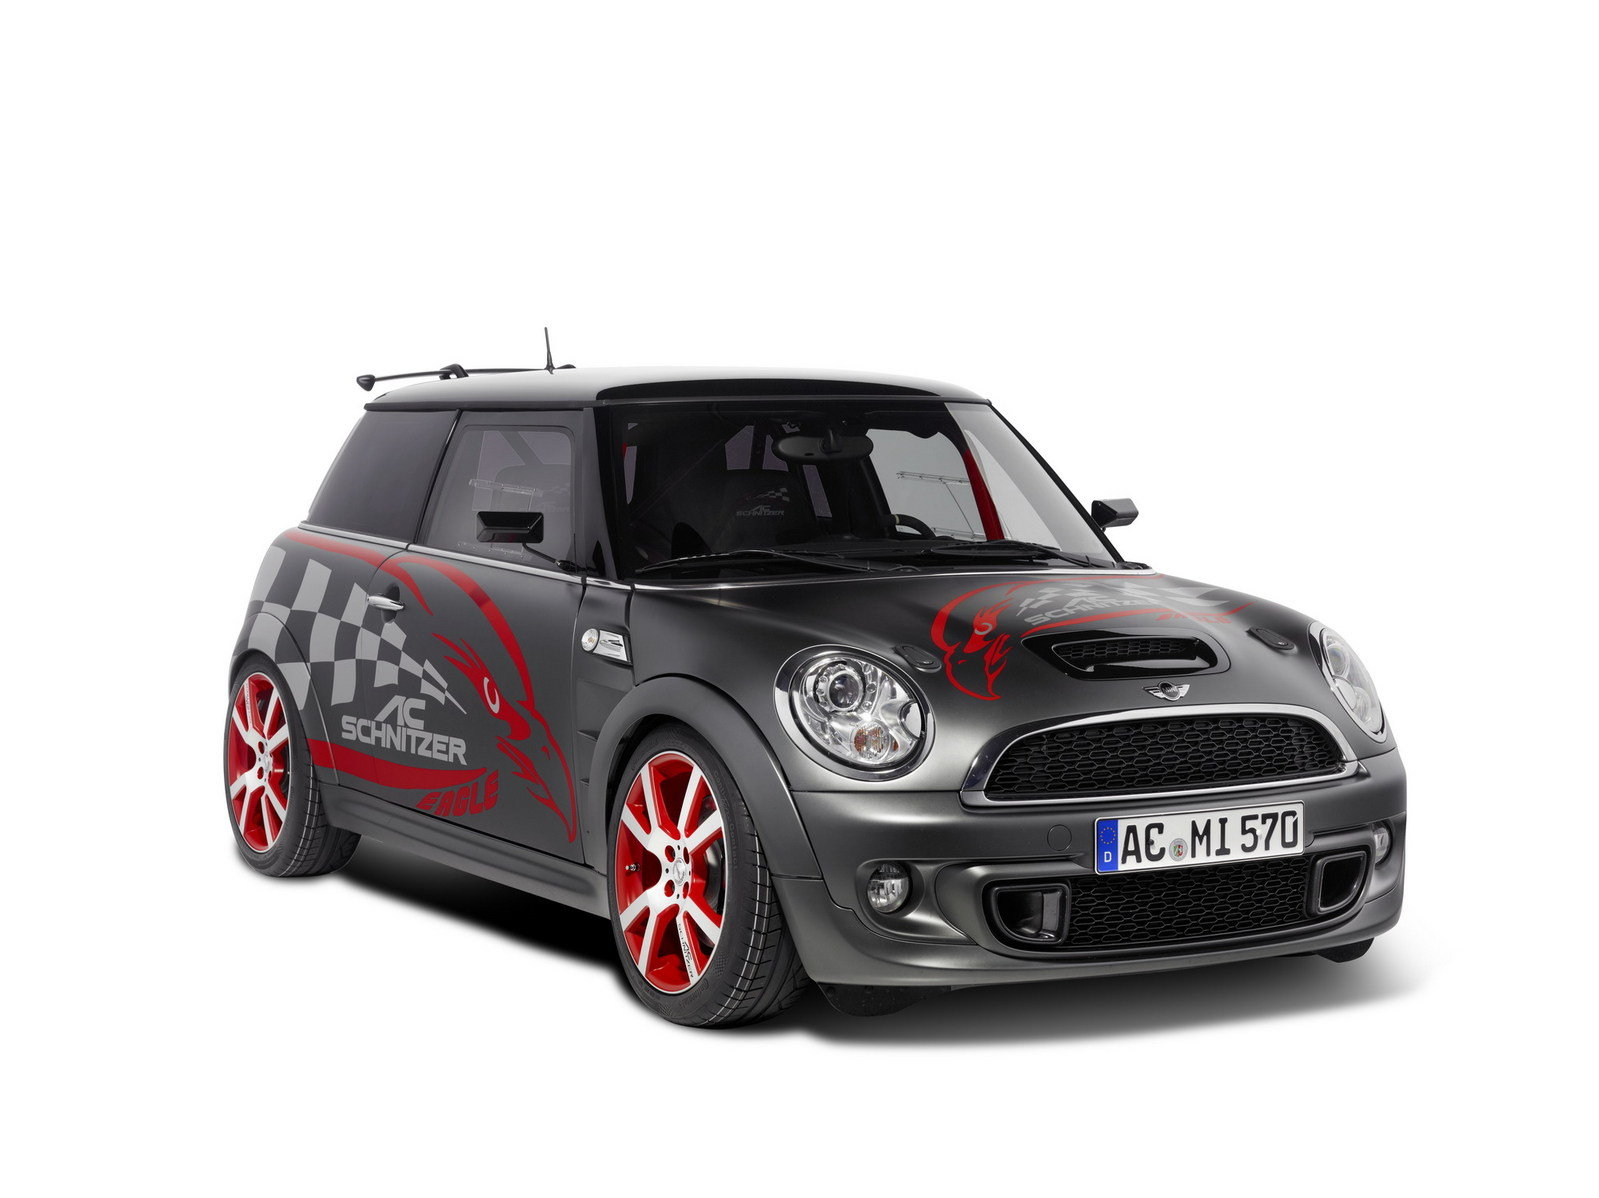 2011 mini jcw eagle by ac schnitzer review top speed. Black Bedroom Furniture Sets. Home Design Ideas